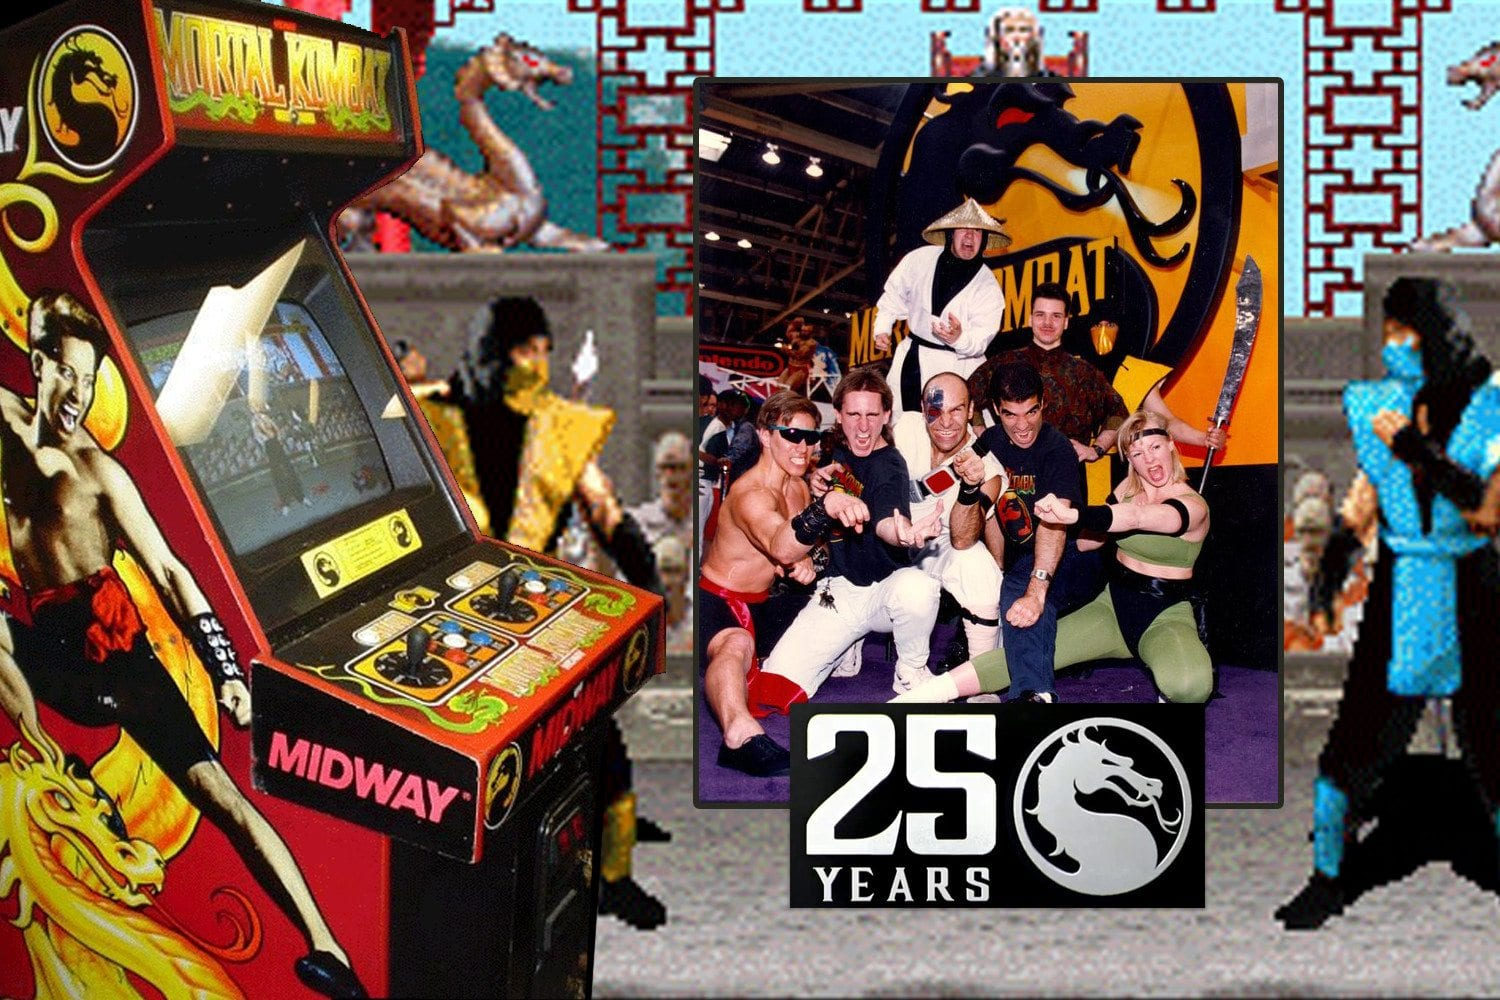 FINISH HIM! 25 Years of Mortal Kombat